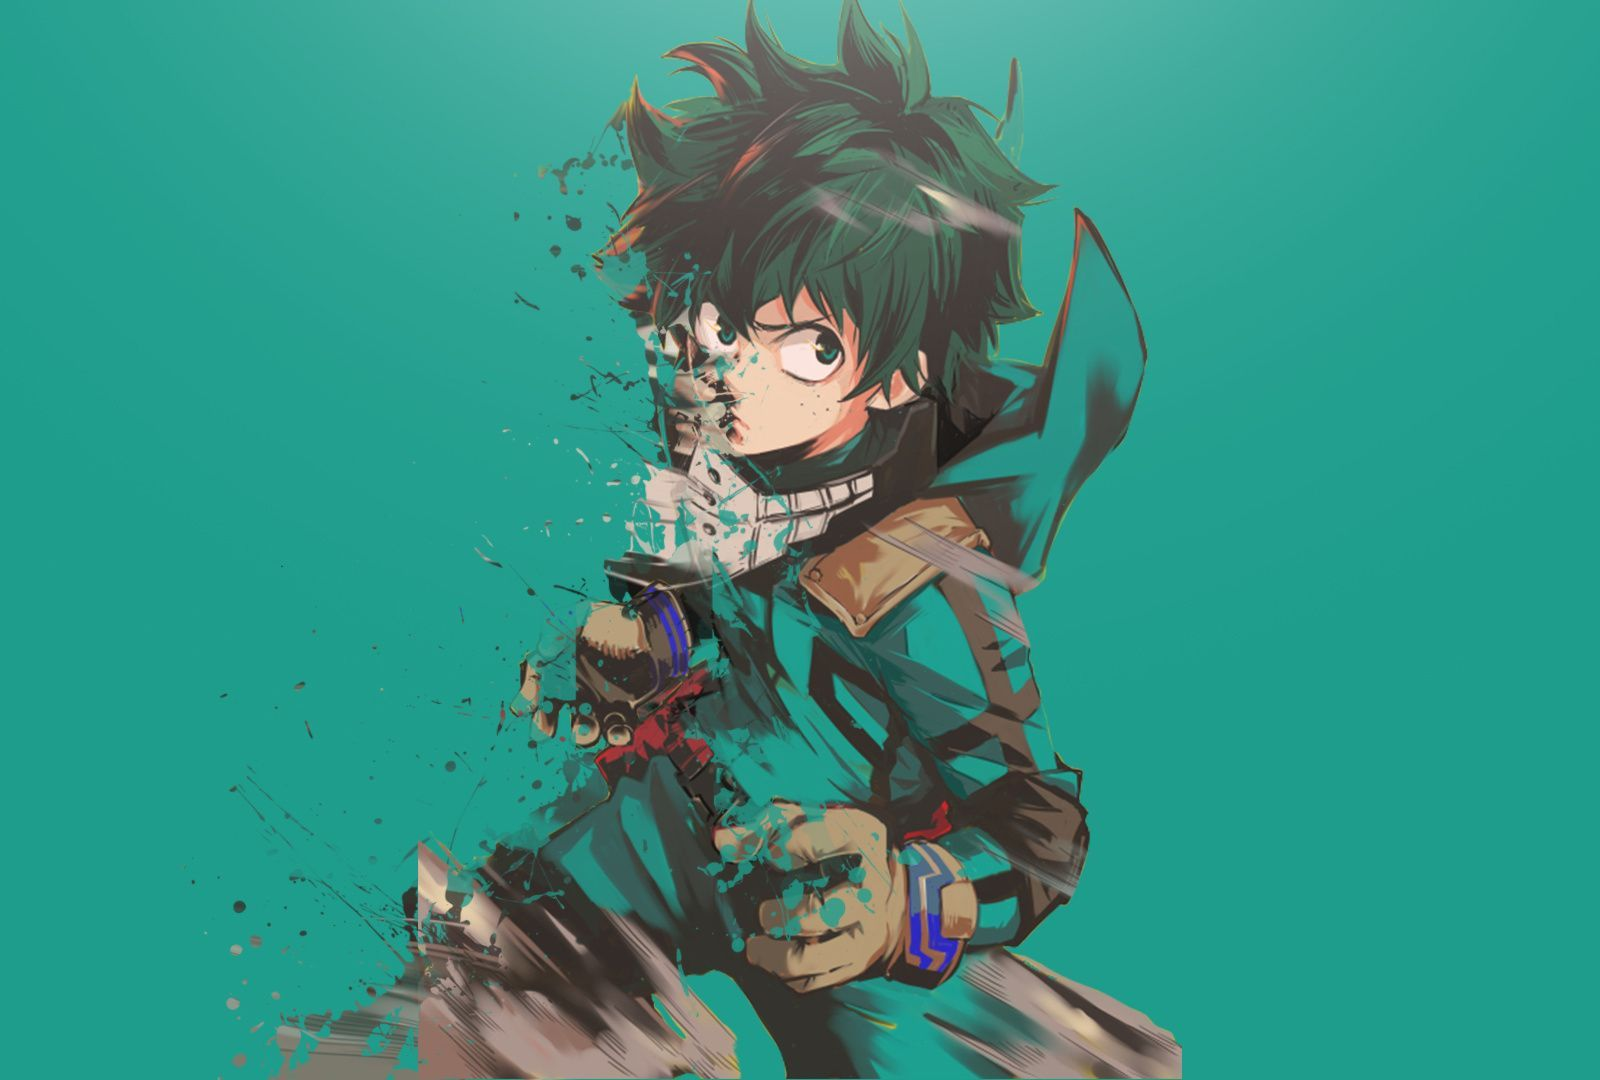 My Hero Academia 4k Wallpapers Top Free My Hero Academia 4k Backgrounds Wallpaperaccess Hero Wallpaper Anime Wallpaper Anime Boy